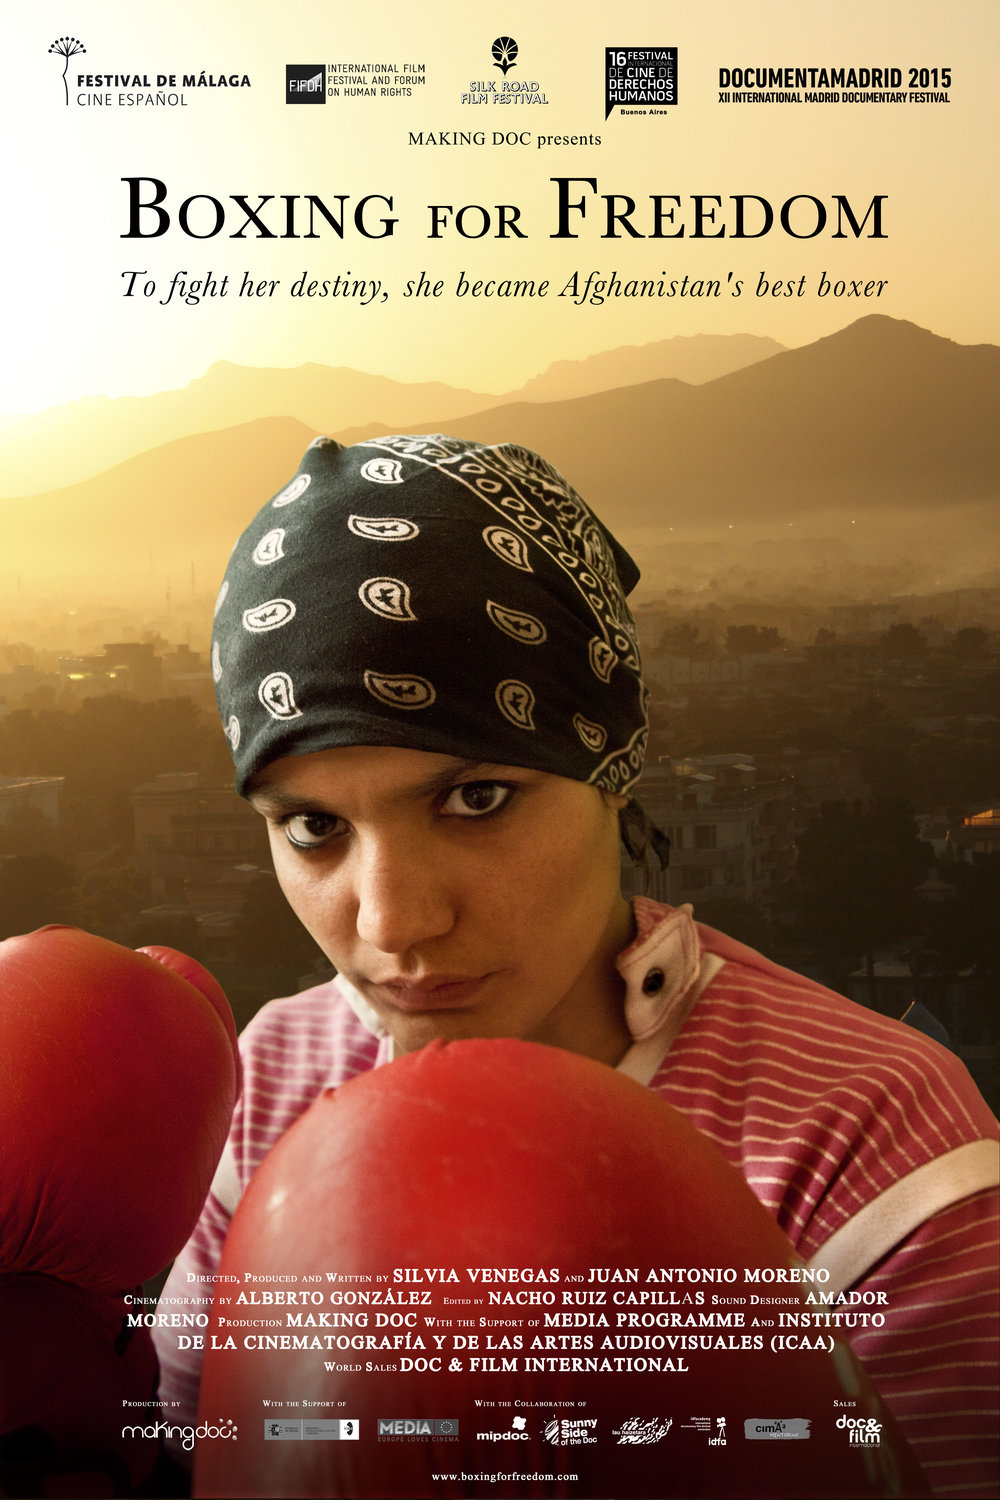 Boxing for Freedom    One morning, a man named Hiromi wakes up and finds himself transformed into a woman―the movie has a setting similar to Franz Kafka's ʺThe Metamorphosis.ʺ...  Read More